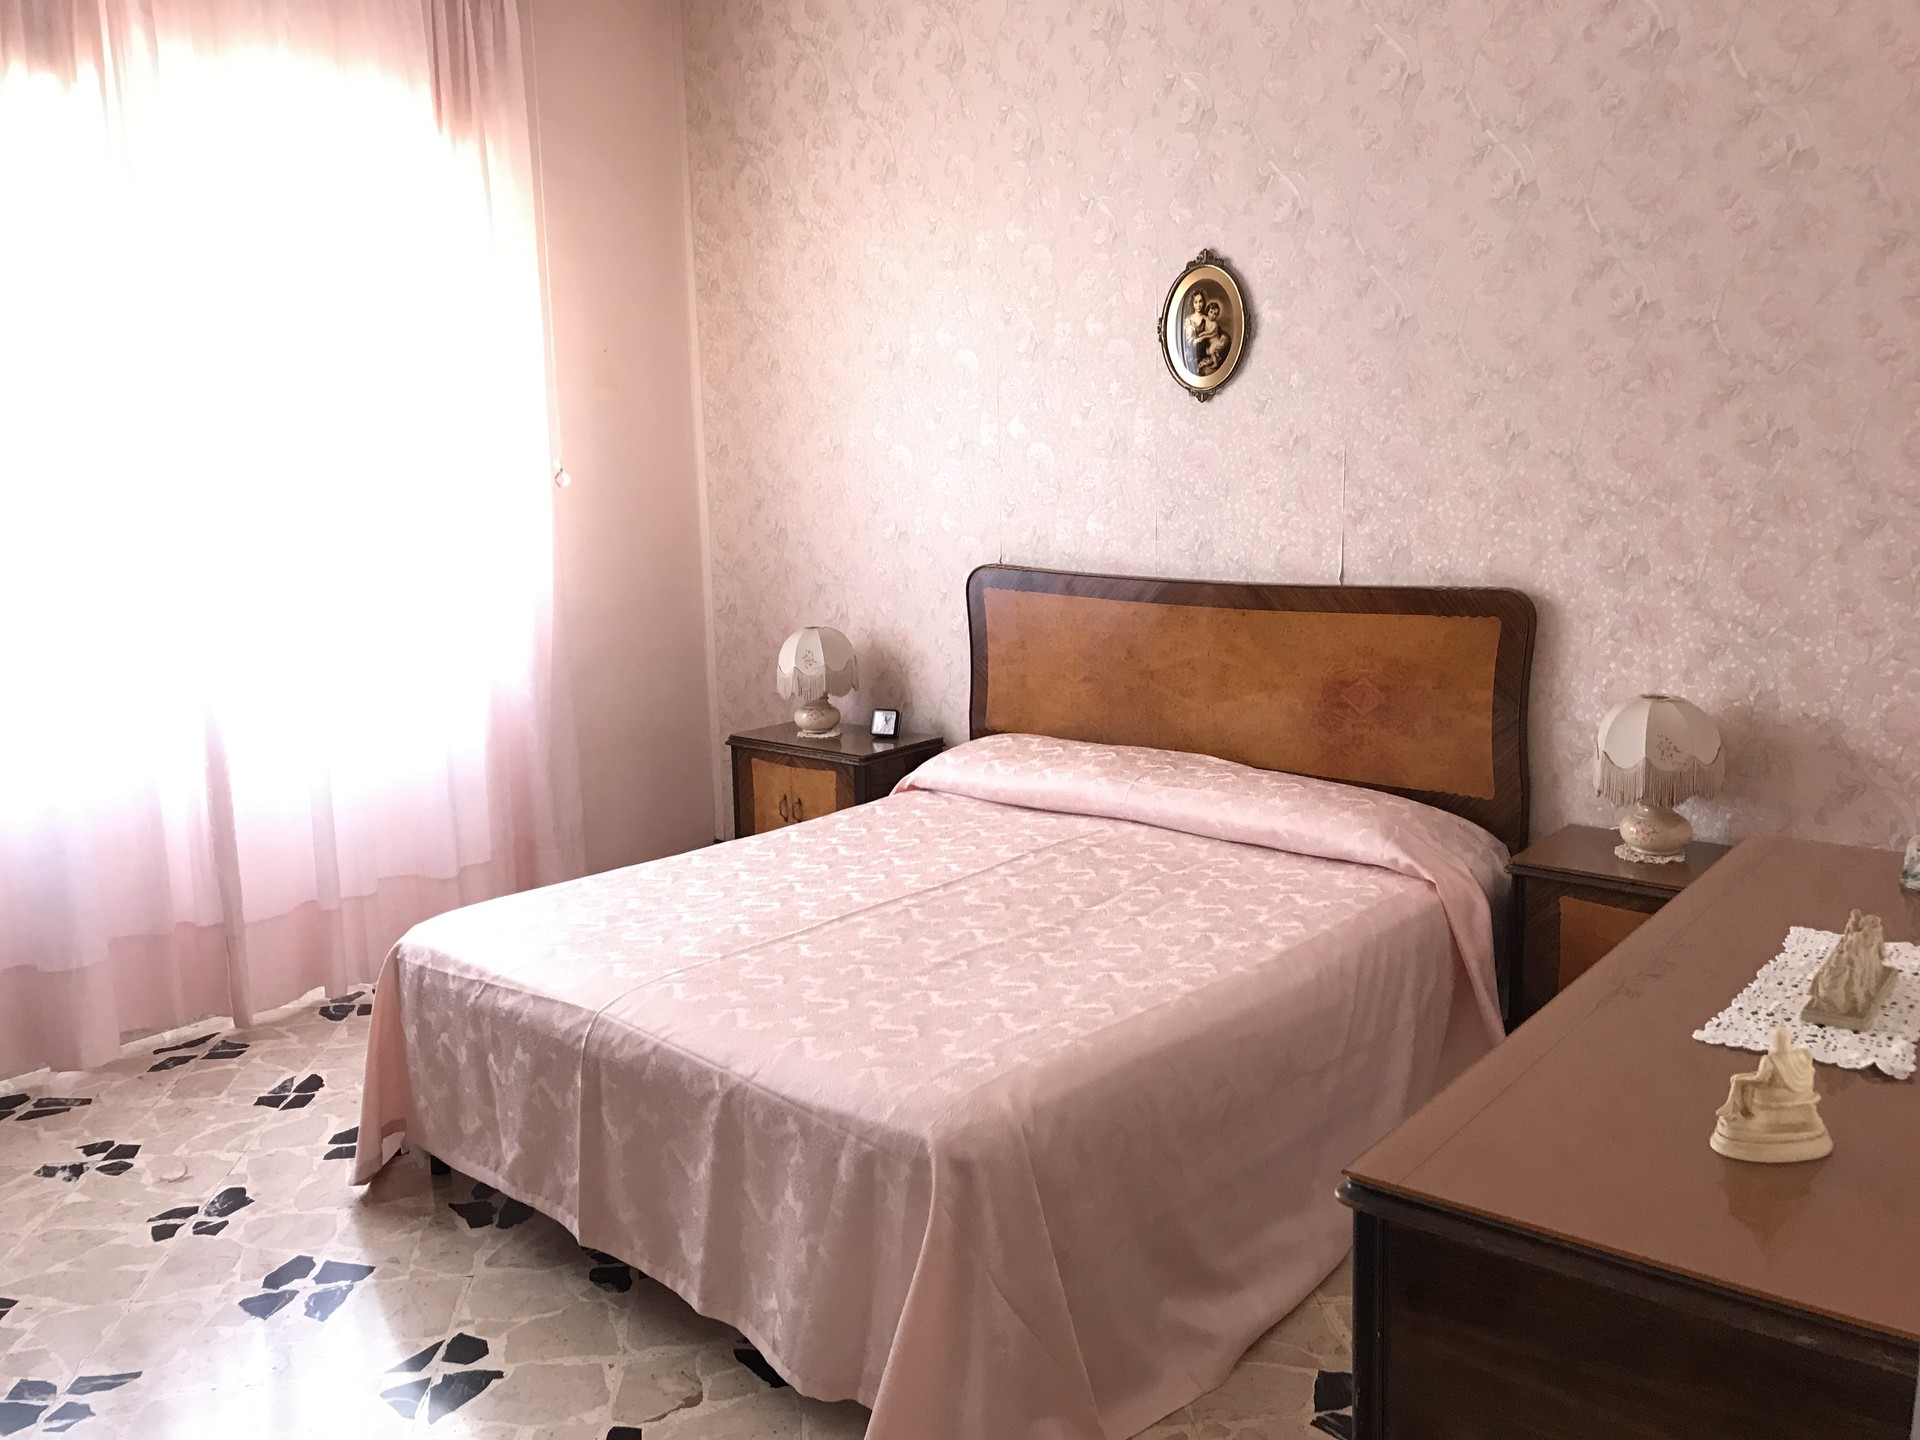 Singola Con Letto Matrimoniale.Searching For Roommate To Live In This Spectacular 4 Bedroom